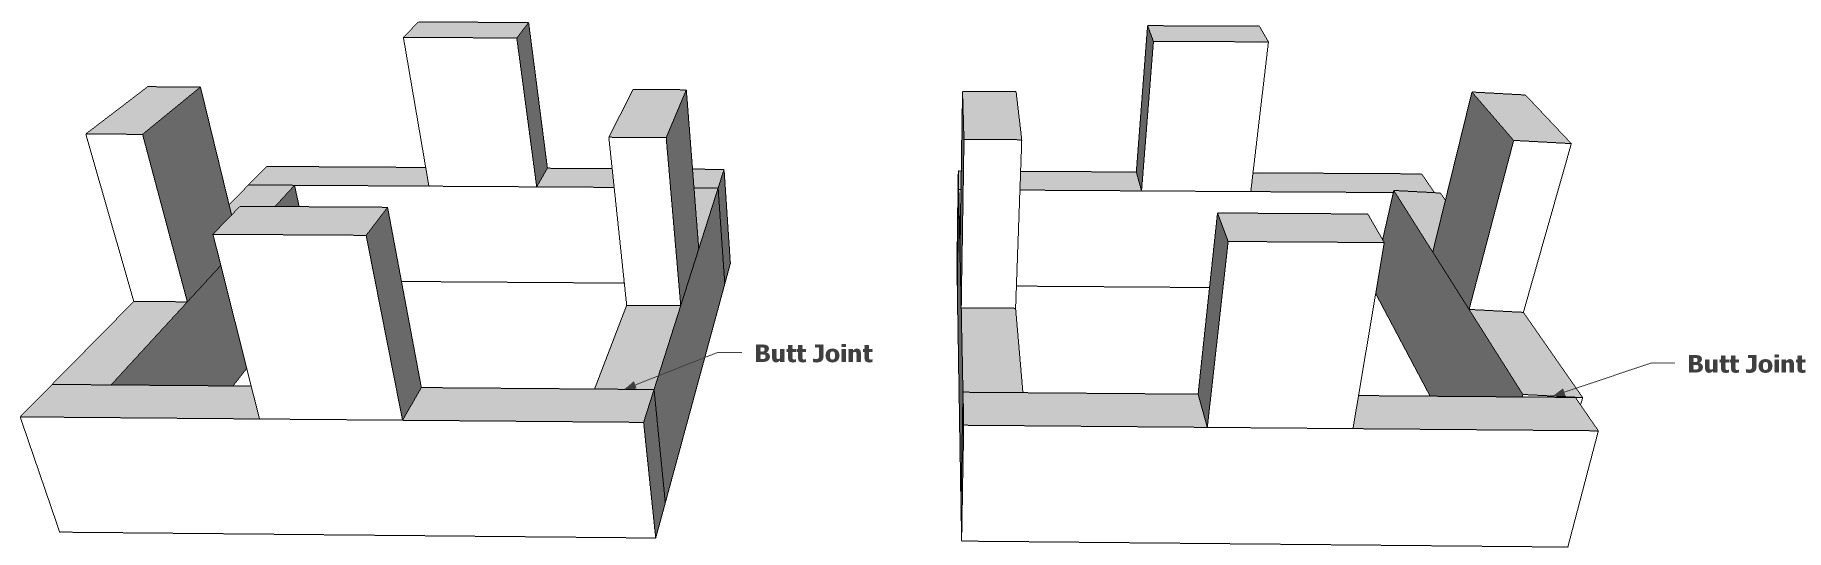 Butt Joint Question.jpg